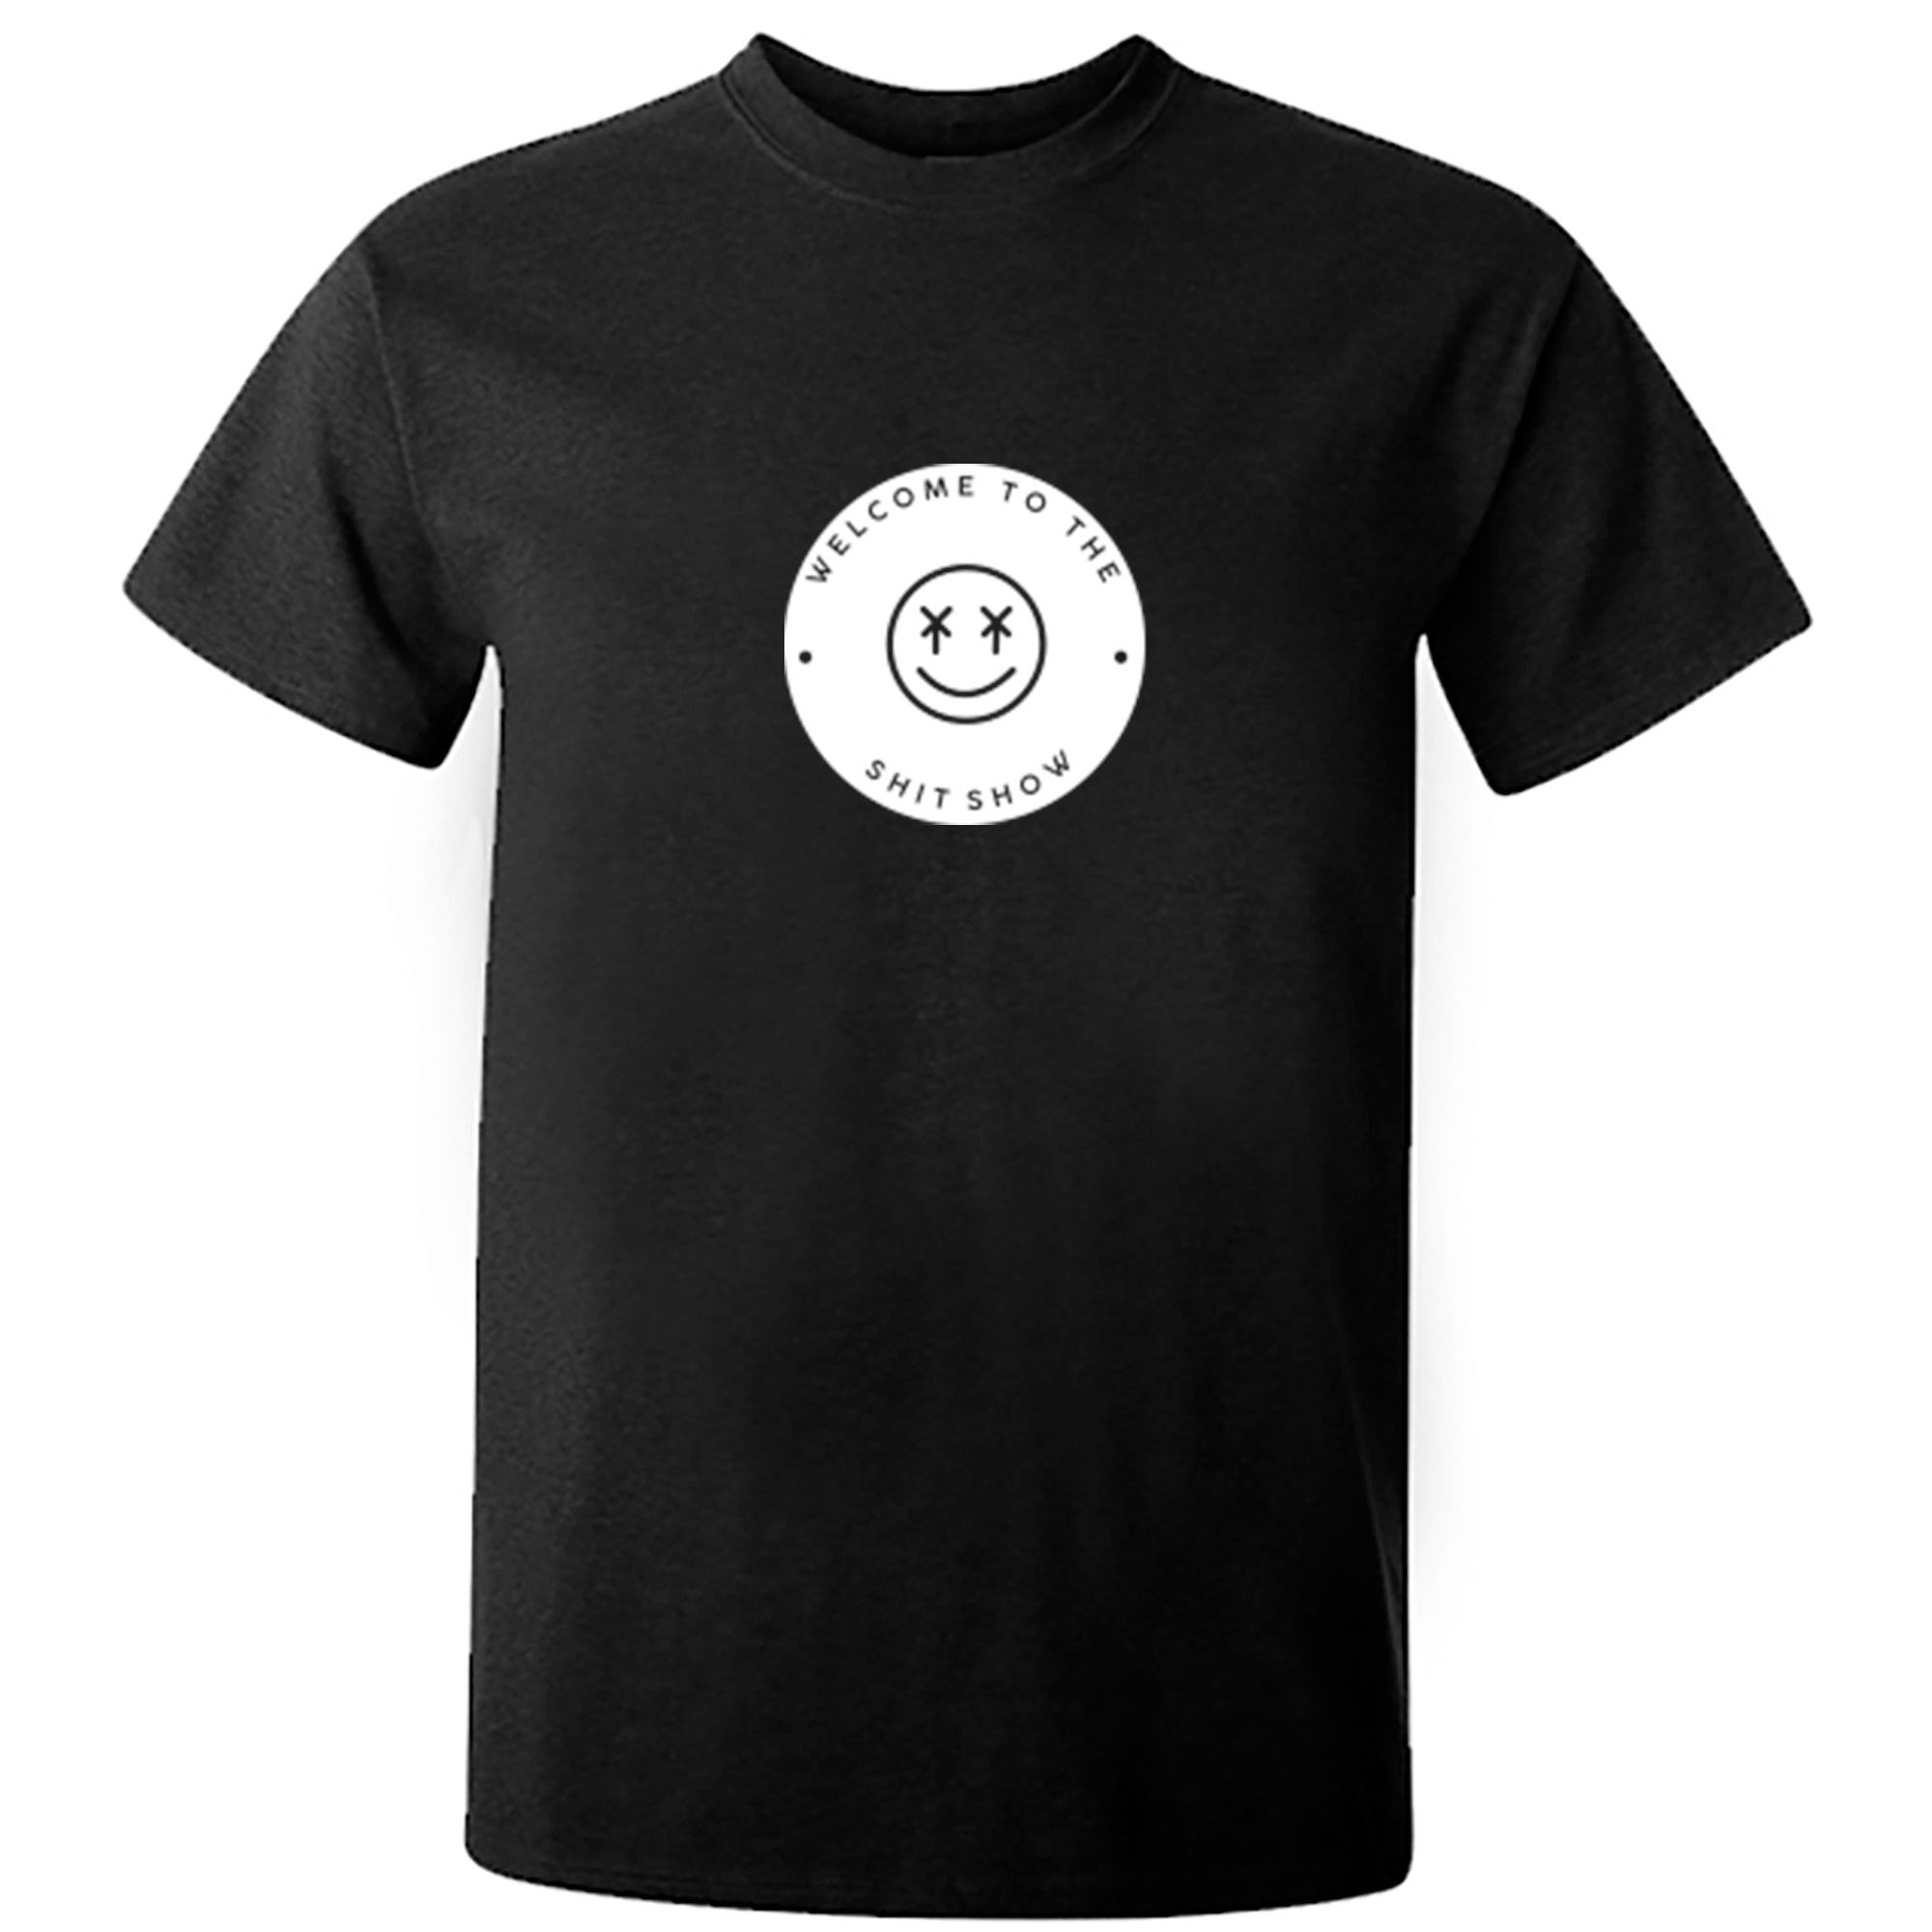 Welcome To The Shit Show Unisex Fit T-Shirt S1136 - Illustrated Identity Ltd.